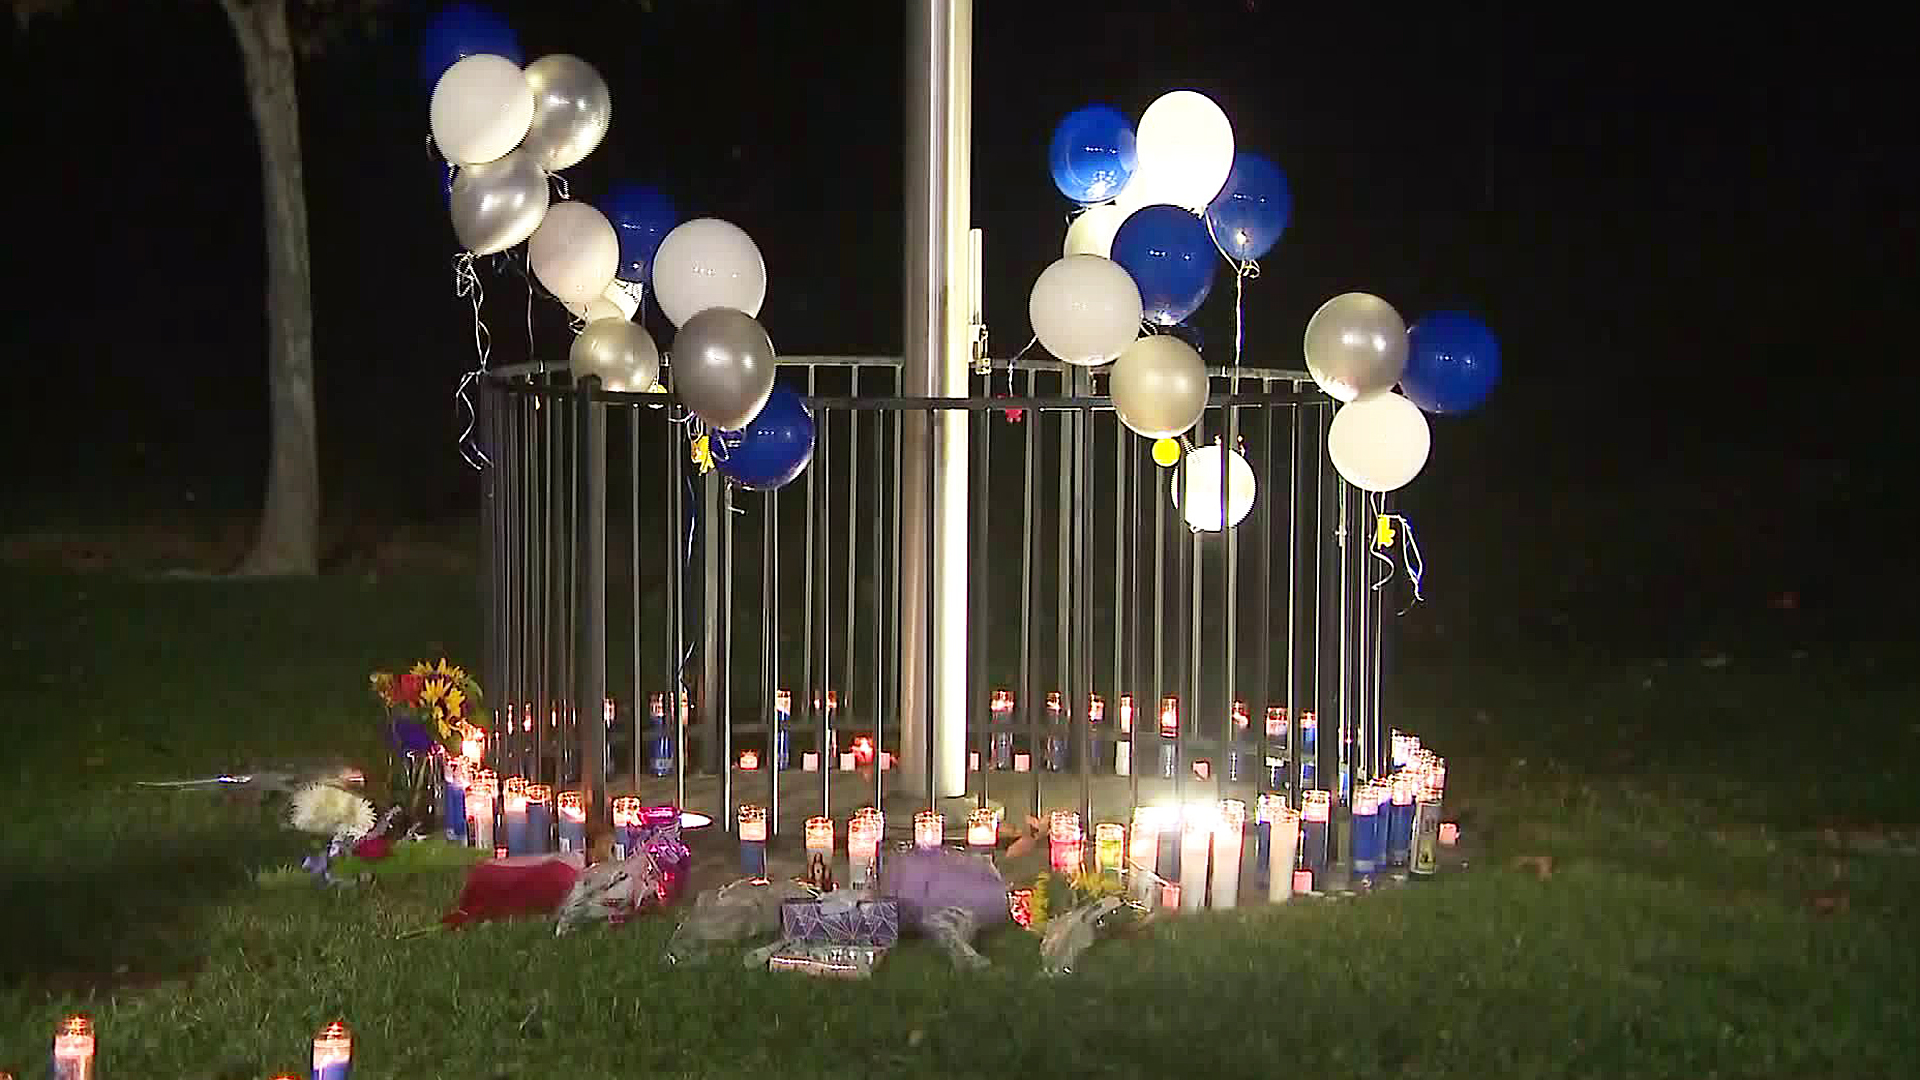 A growing memorial is seen at Central Park near Saugus High School on Nov. 15, 2019. (Credit: KTLA)